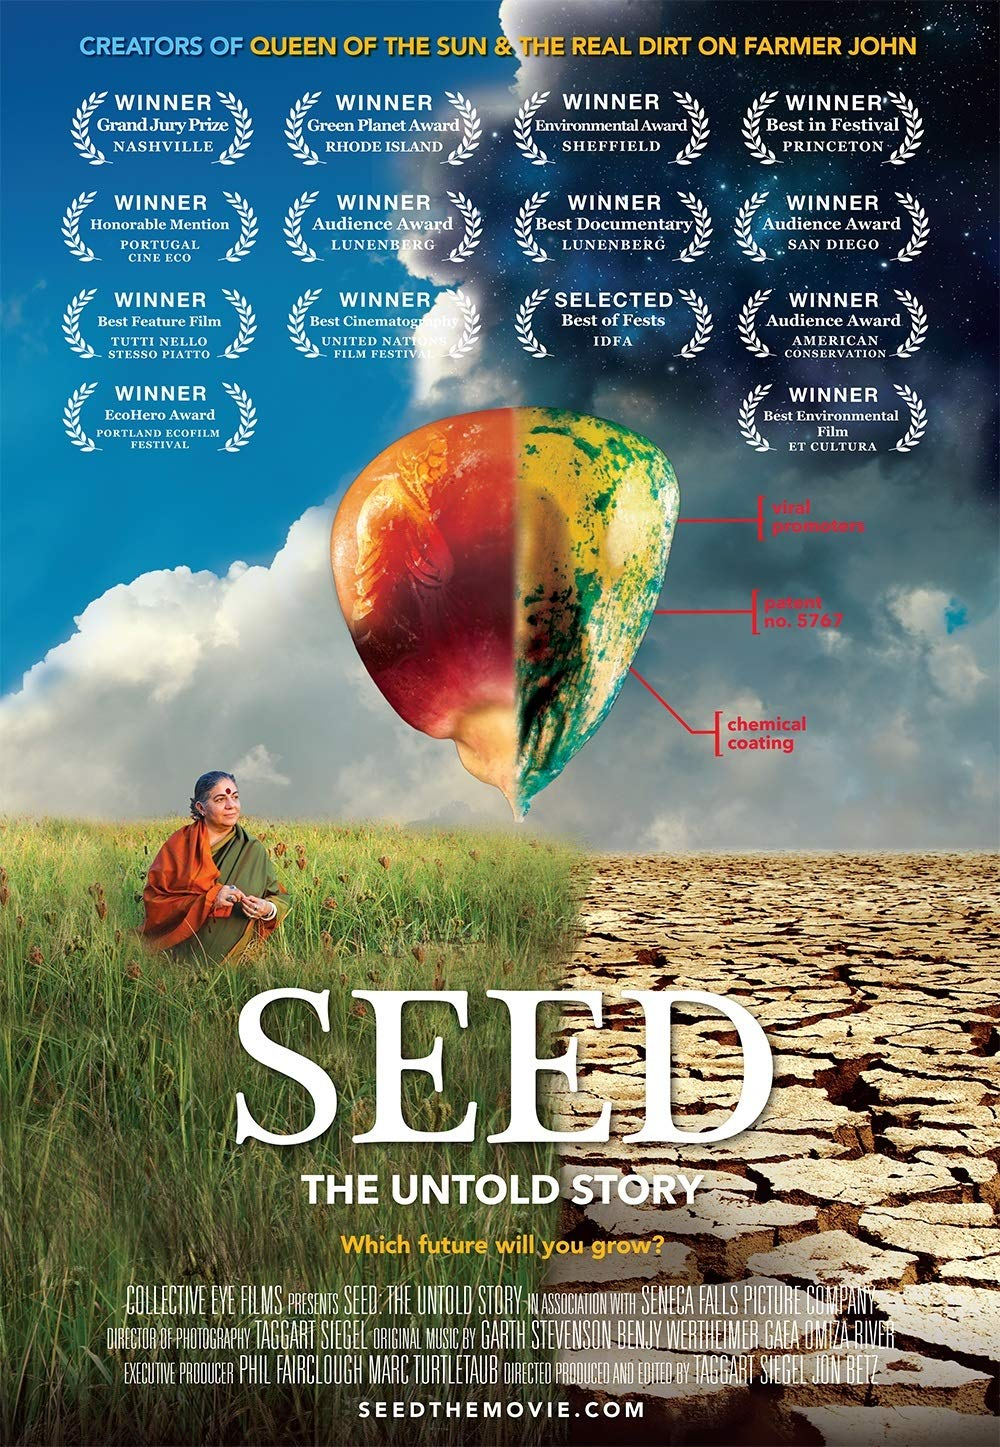 SEED: The Untold Story by Collective Eye Films